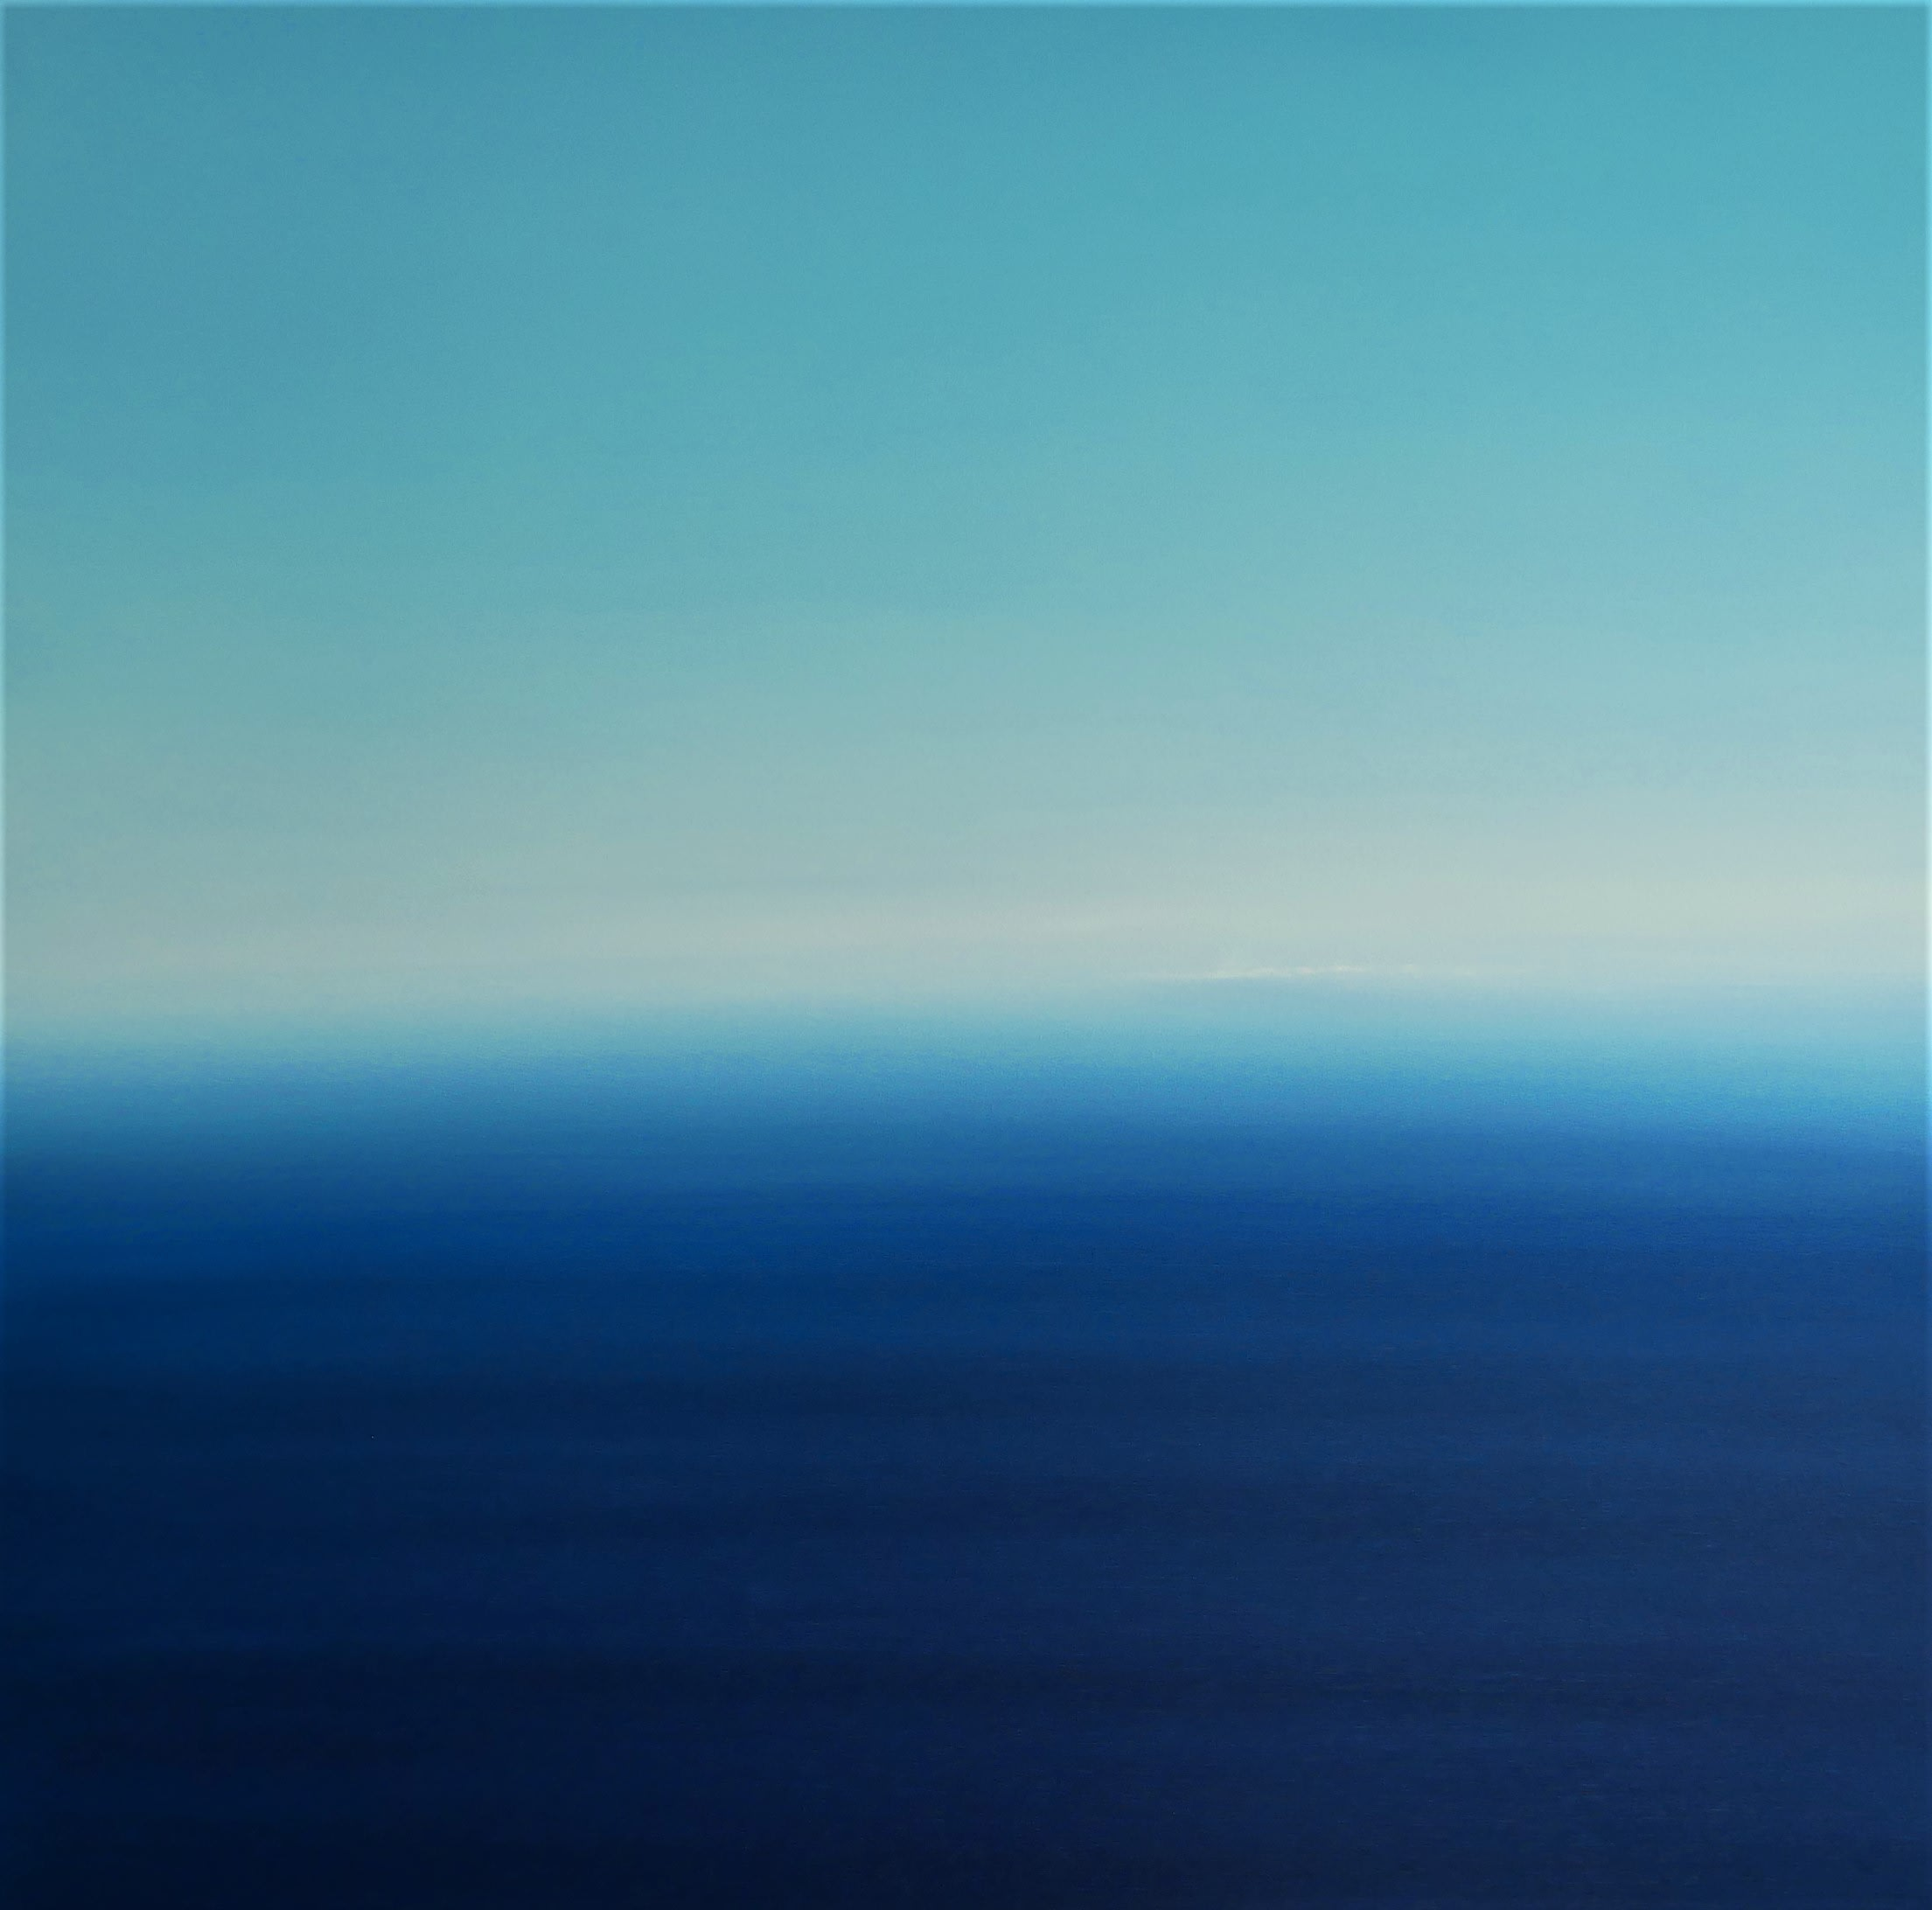 """<span class=""""link fancybox-details-link""""><a href=""""/artists/78-martyn-perryman/works/7825-martyn-perryman-blue-infinity-st-ives-bay-2021/"""">View Detail Page</a></span><div class=""""artist""""><strong>Martyn Perryman</strong></div> b. 1963 <div class=""""title""""><em>Blue Infinity St Ives Bay</em>, 2021</div> <div class=""""medium"""">oil on canvas<br /> </div> <div class=""""dimensions"""">h. 120 x w. 120 cm </div><div class=""""copyright_line"""">Ownart: £140 x 10 Months, 0% APR</div>"""